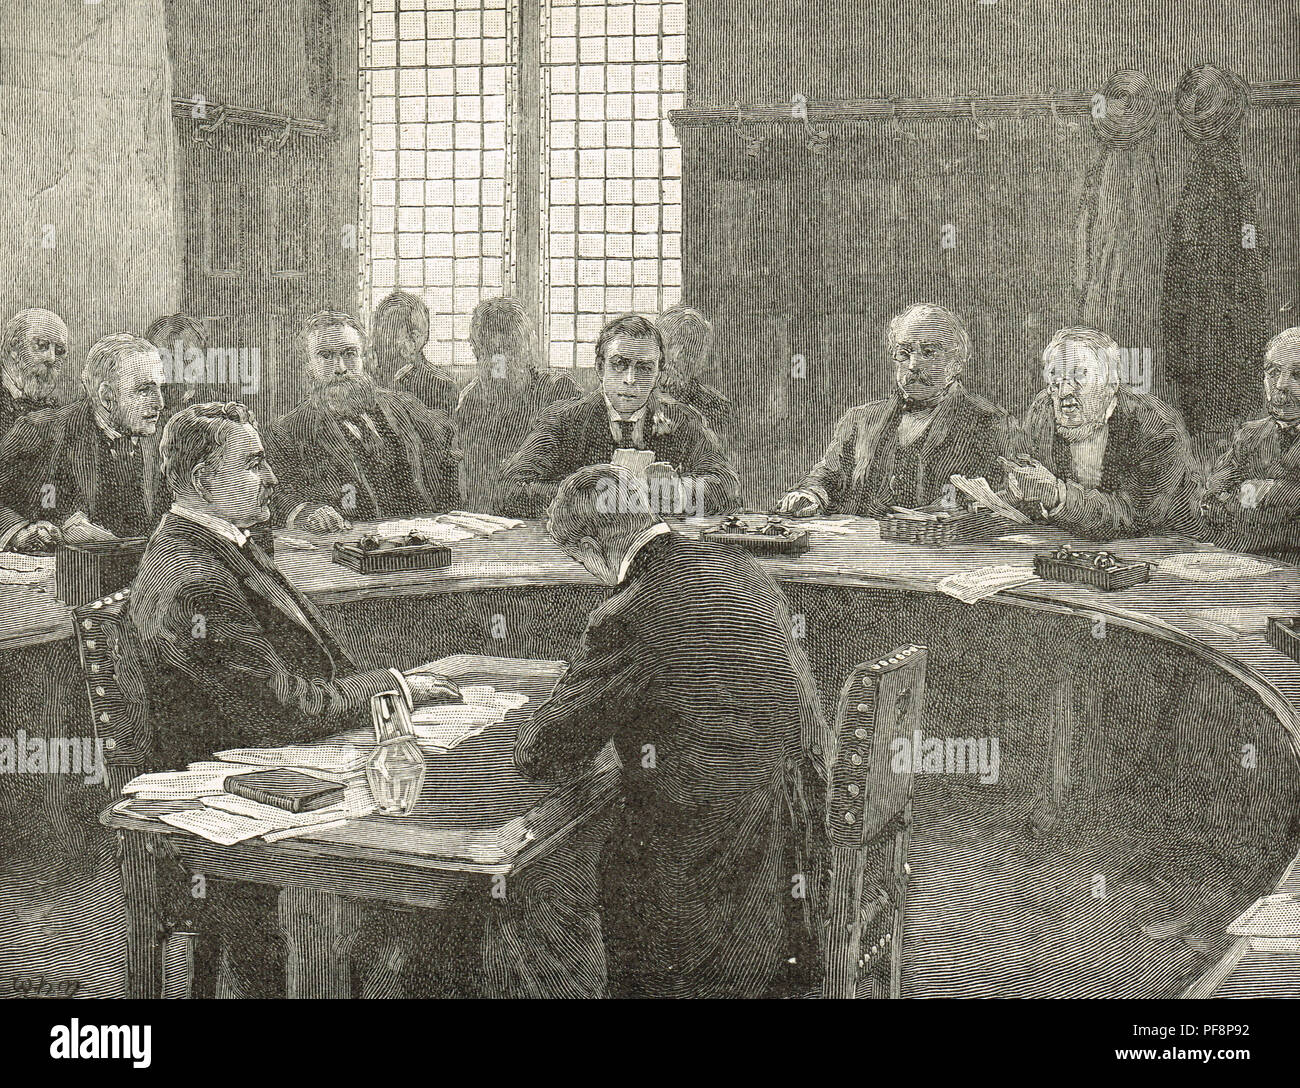 Cecil Rhodes giving evidence before the South Africa committee. A house of commons inquiry into the Jameson Raid against the South African Republic 1895 to 1896, led by Leander Starr Jameson - Stock Image